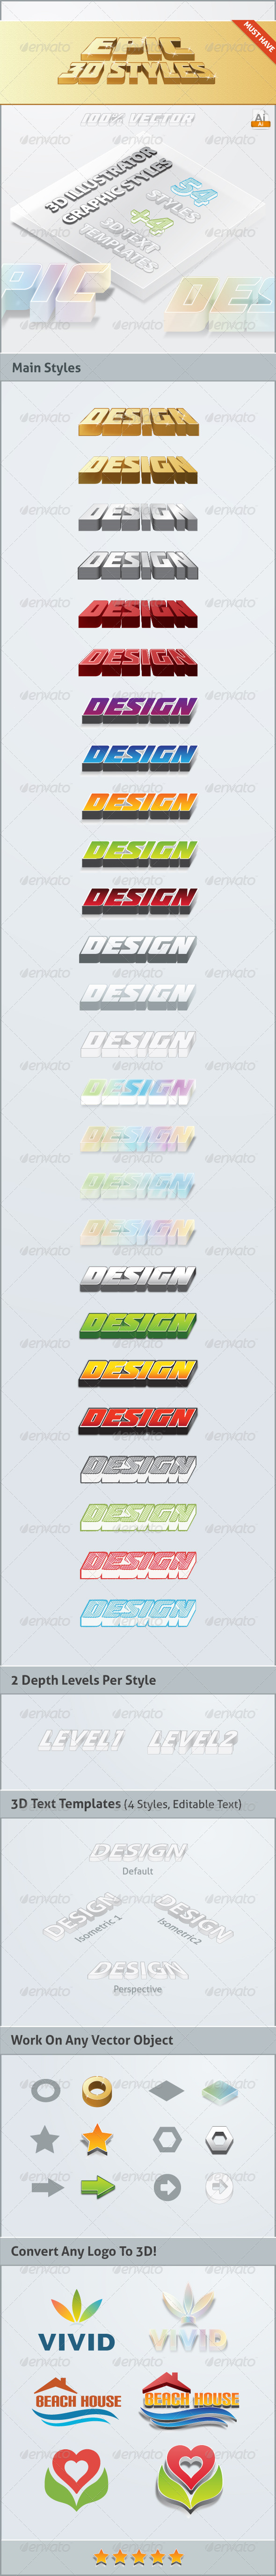 GraphicRiver Epic 3D Styles Illustrator 6507307